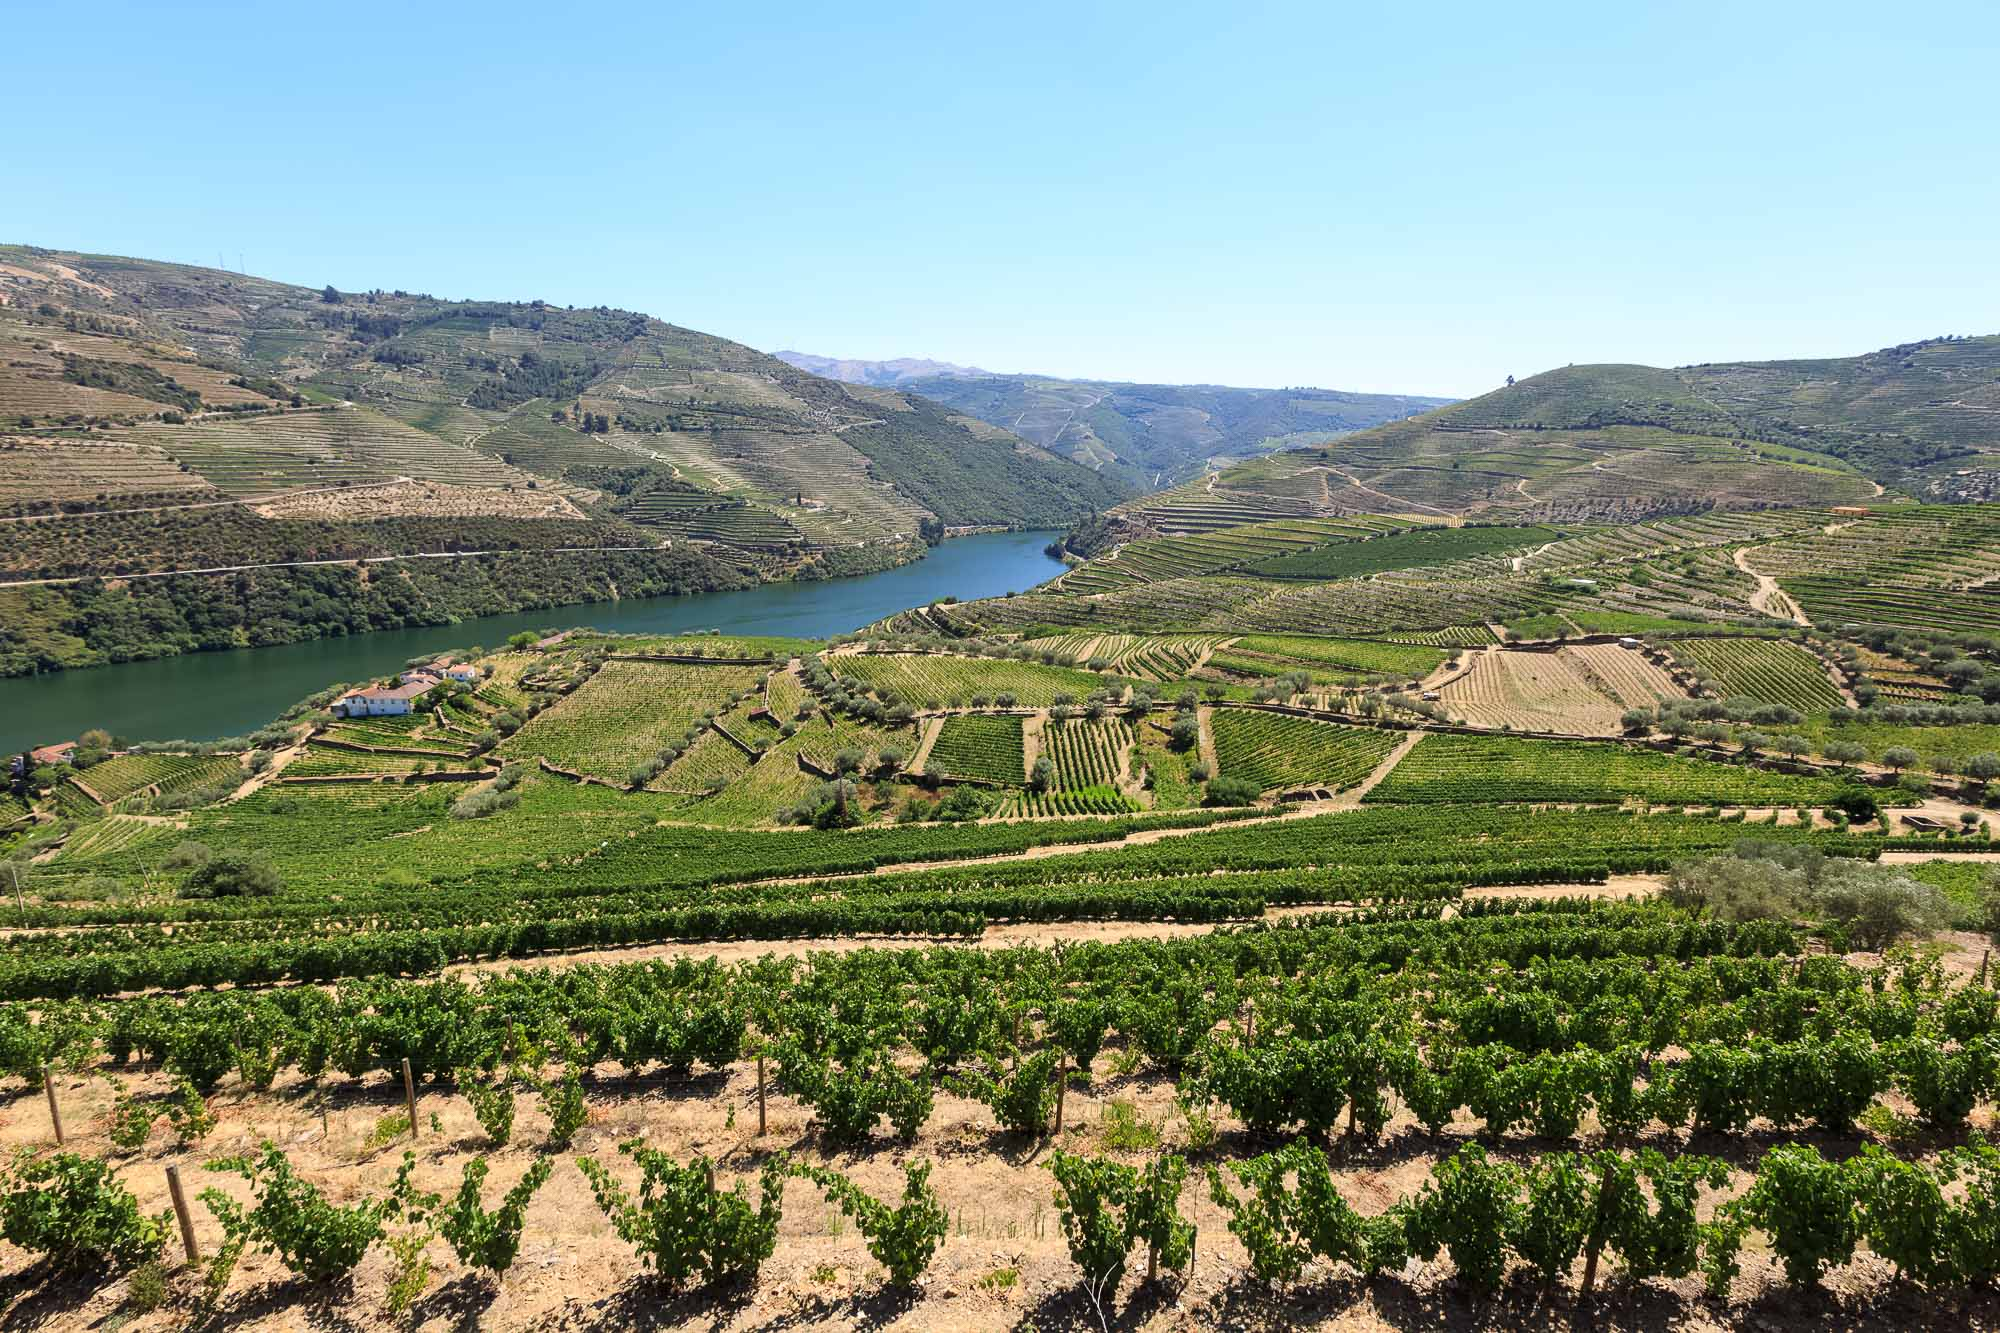 Wine terraces in the Douro Valley overlooking the river. The orientation of the vine plots depends on the grape variety and the kind of port they are meant to be turned into.